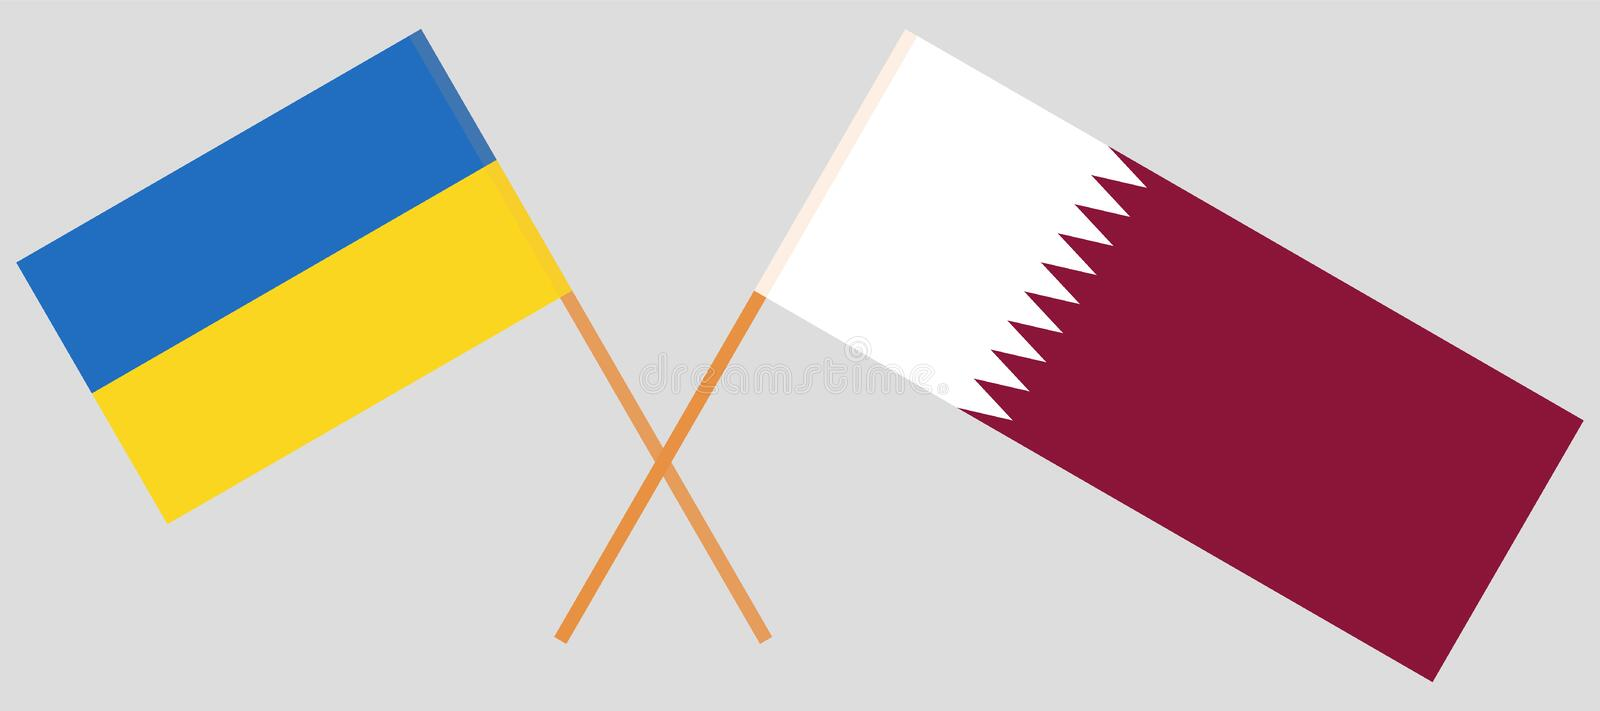 Qatar and Ukraine. The Qatari and Ukrainian flags. Official colors. Correct proportion. Vector. Illustration royalty free illustration